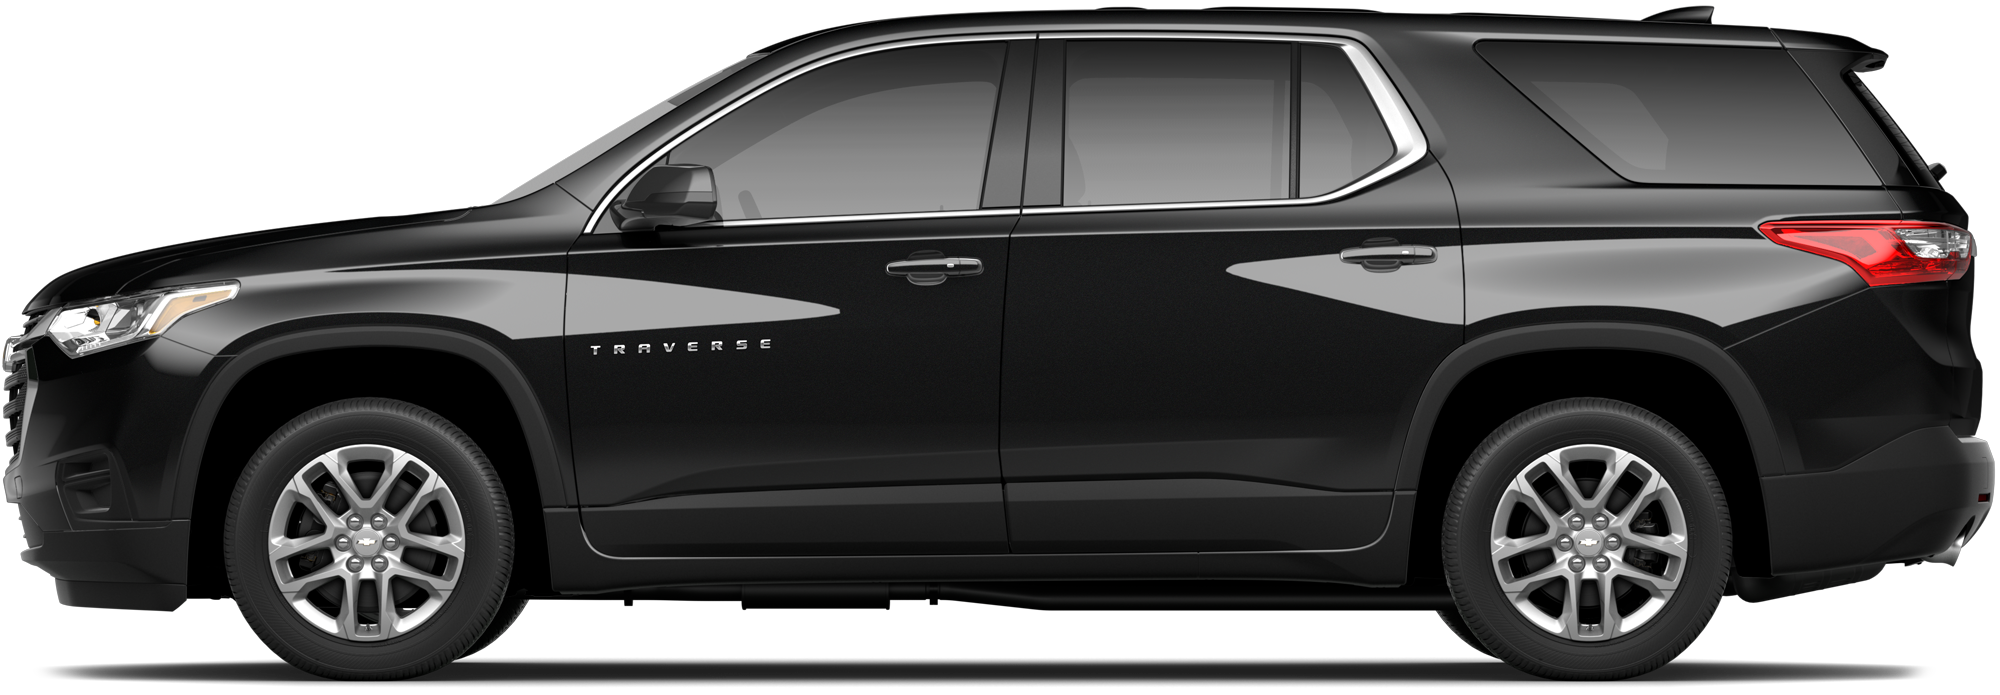 2020 Chevrolet Traverse Suv Needham Heights